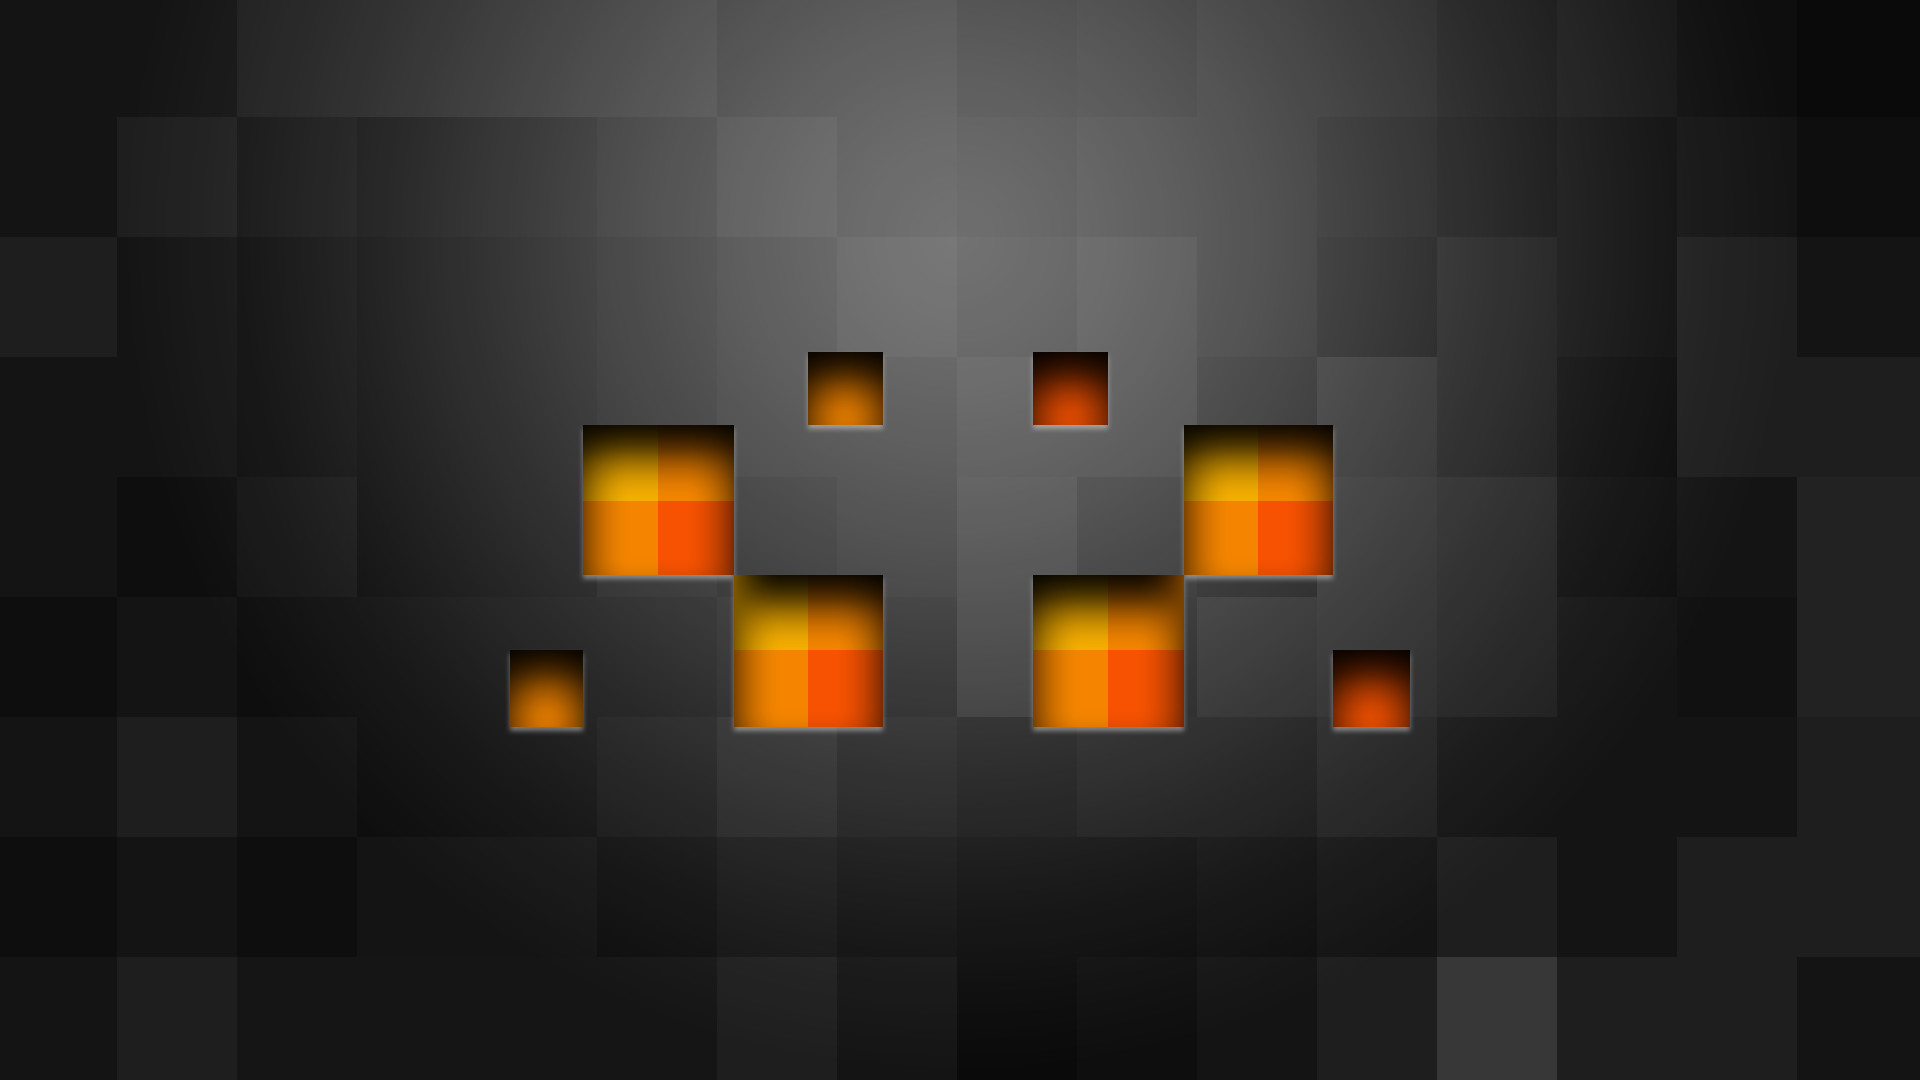 Minecraft Wallpapers x Wallpapers | HD Wallpapers | Pinterest | Minecraft  wallpaper and Wallpaper